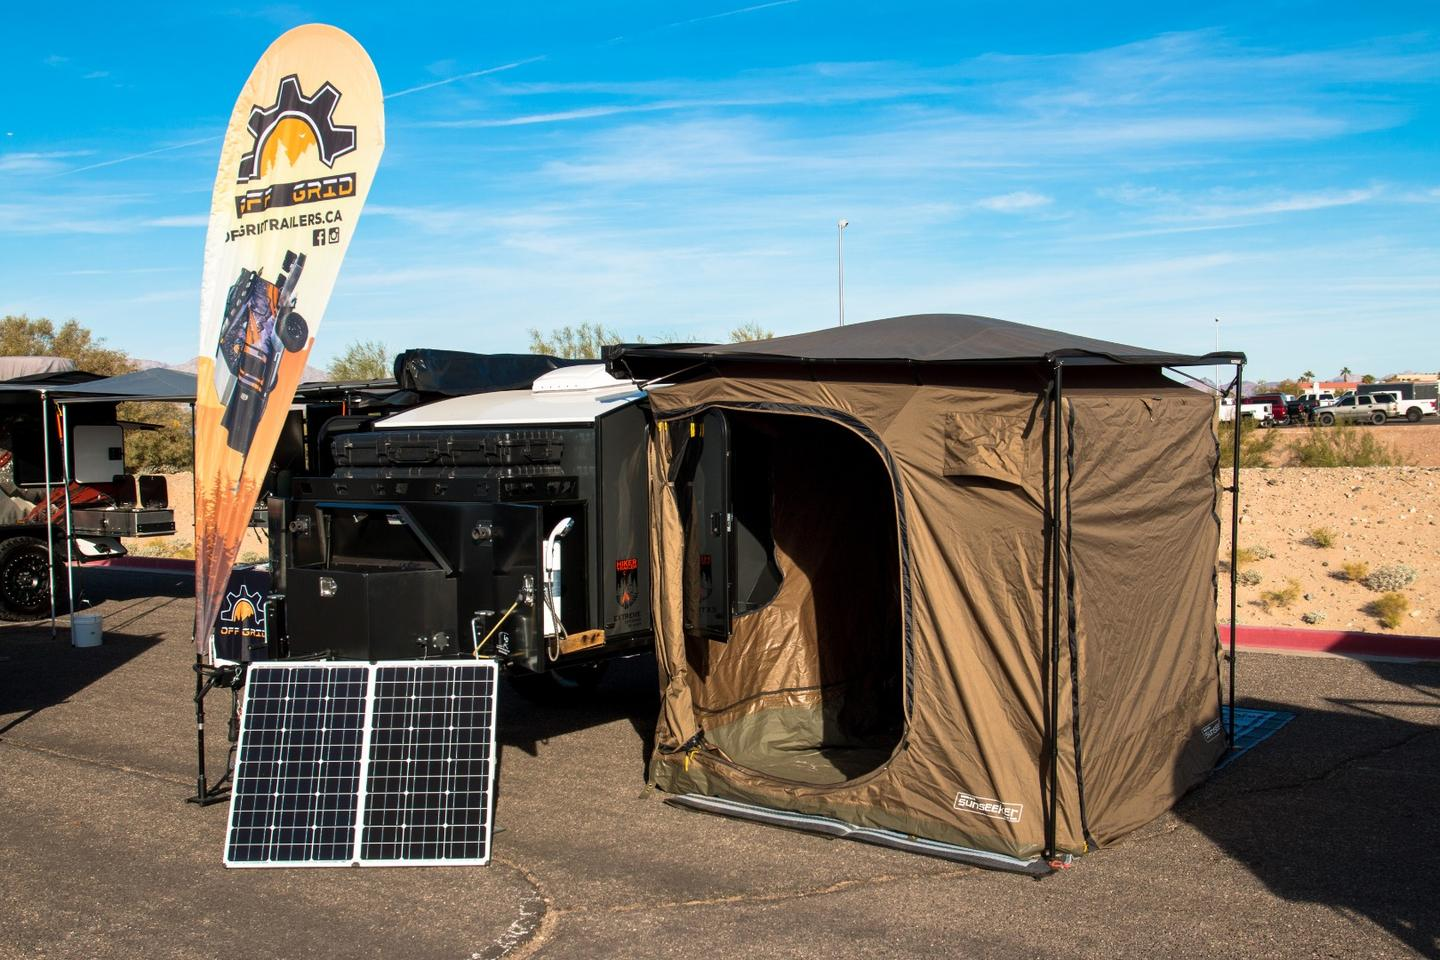 Gallery: Minuscule to massive campers of the 2018 Sand-Water